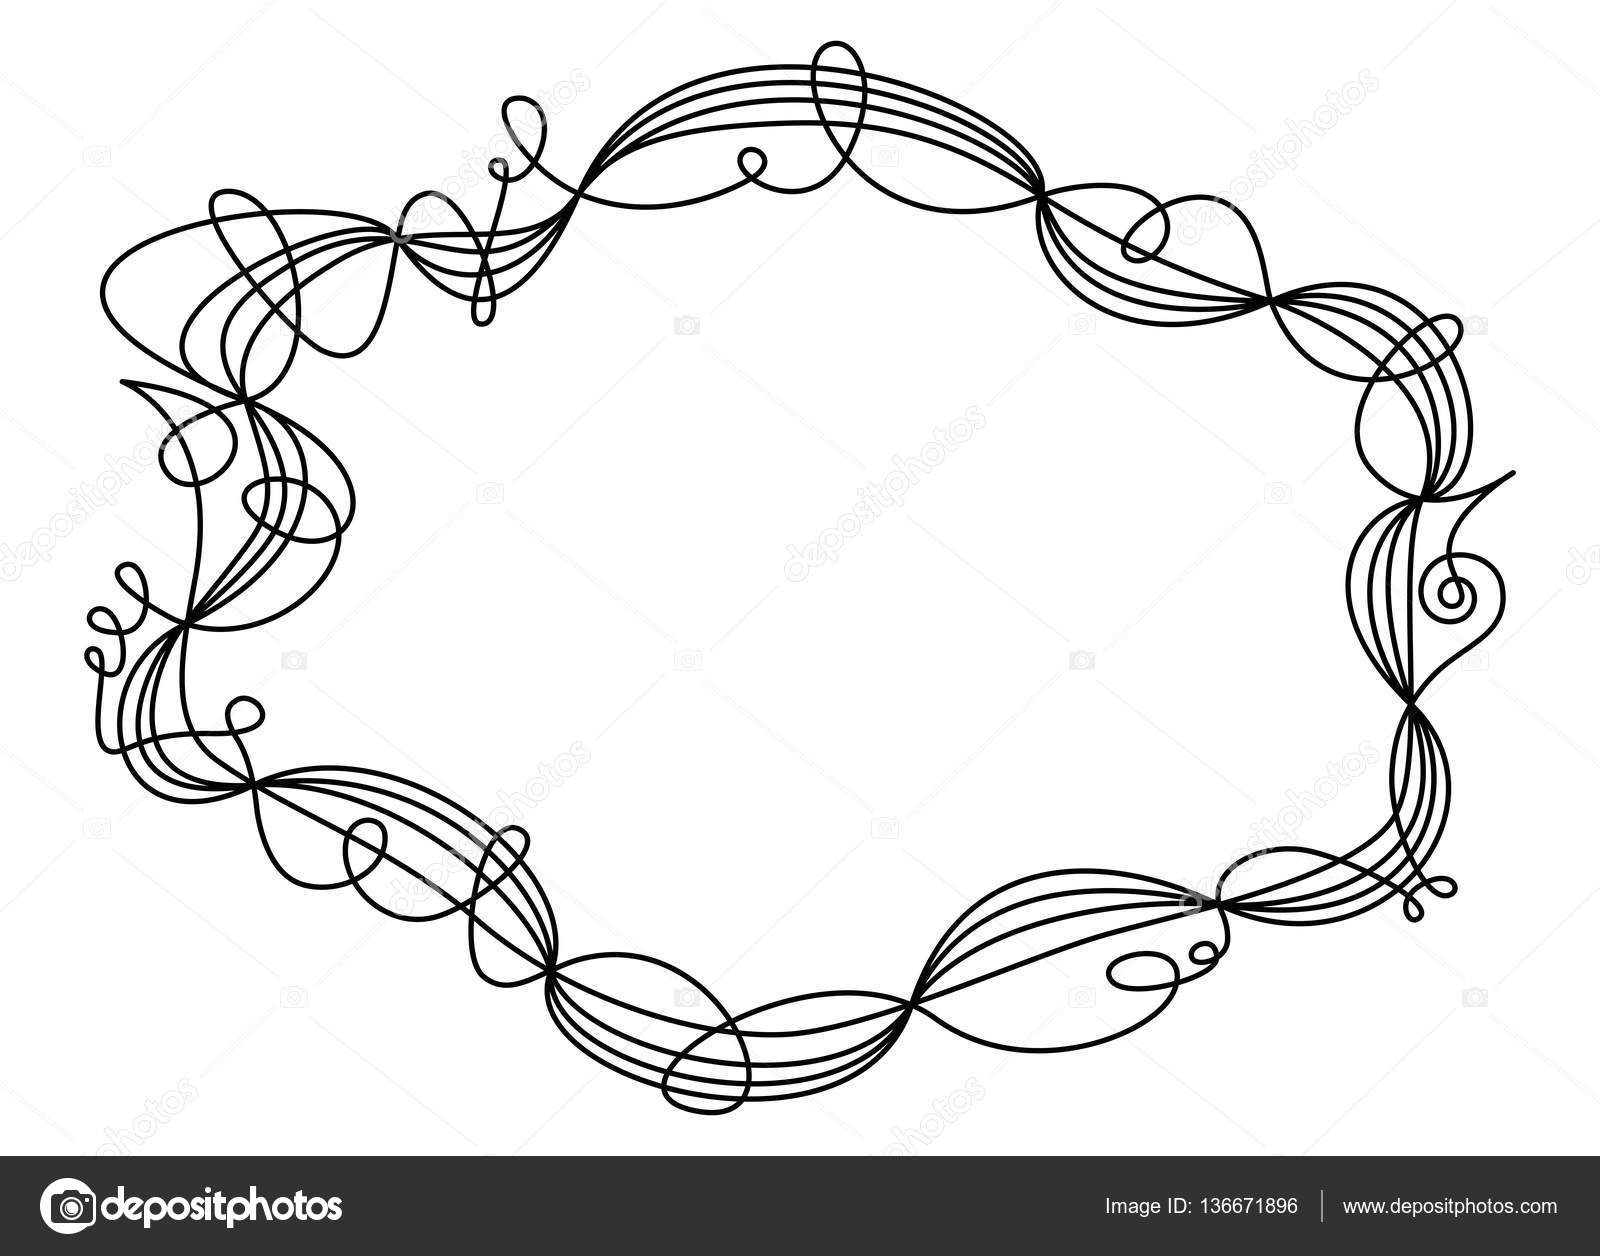 Ornamento decorativo de solo swing hilo marco — Vector de stock ...